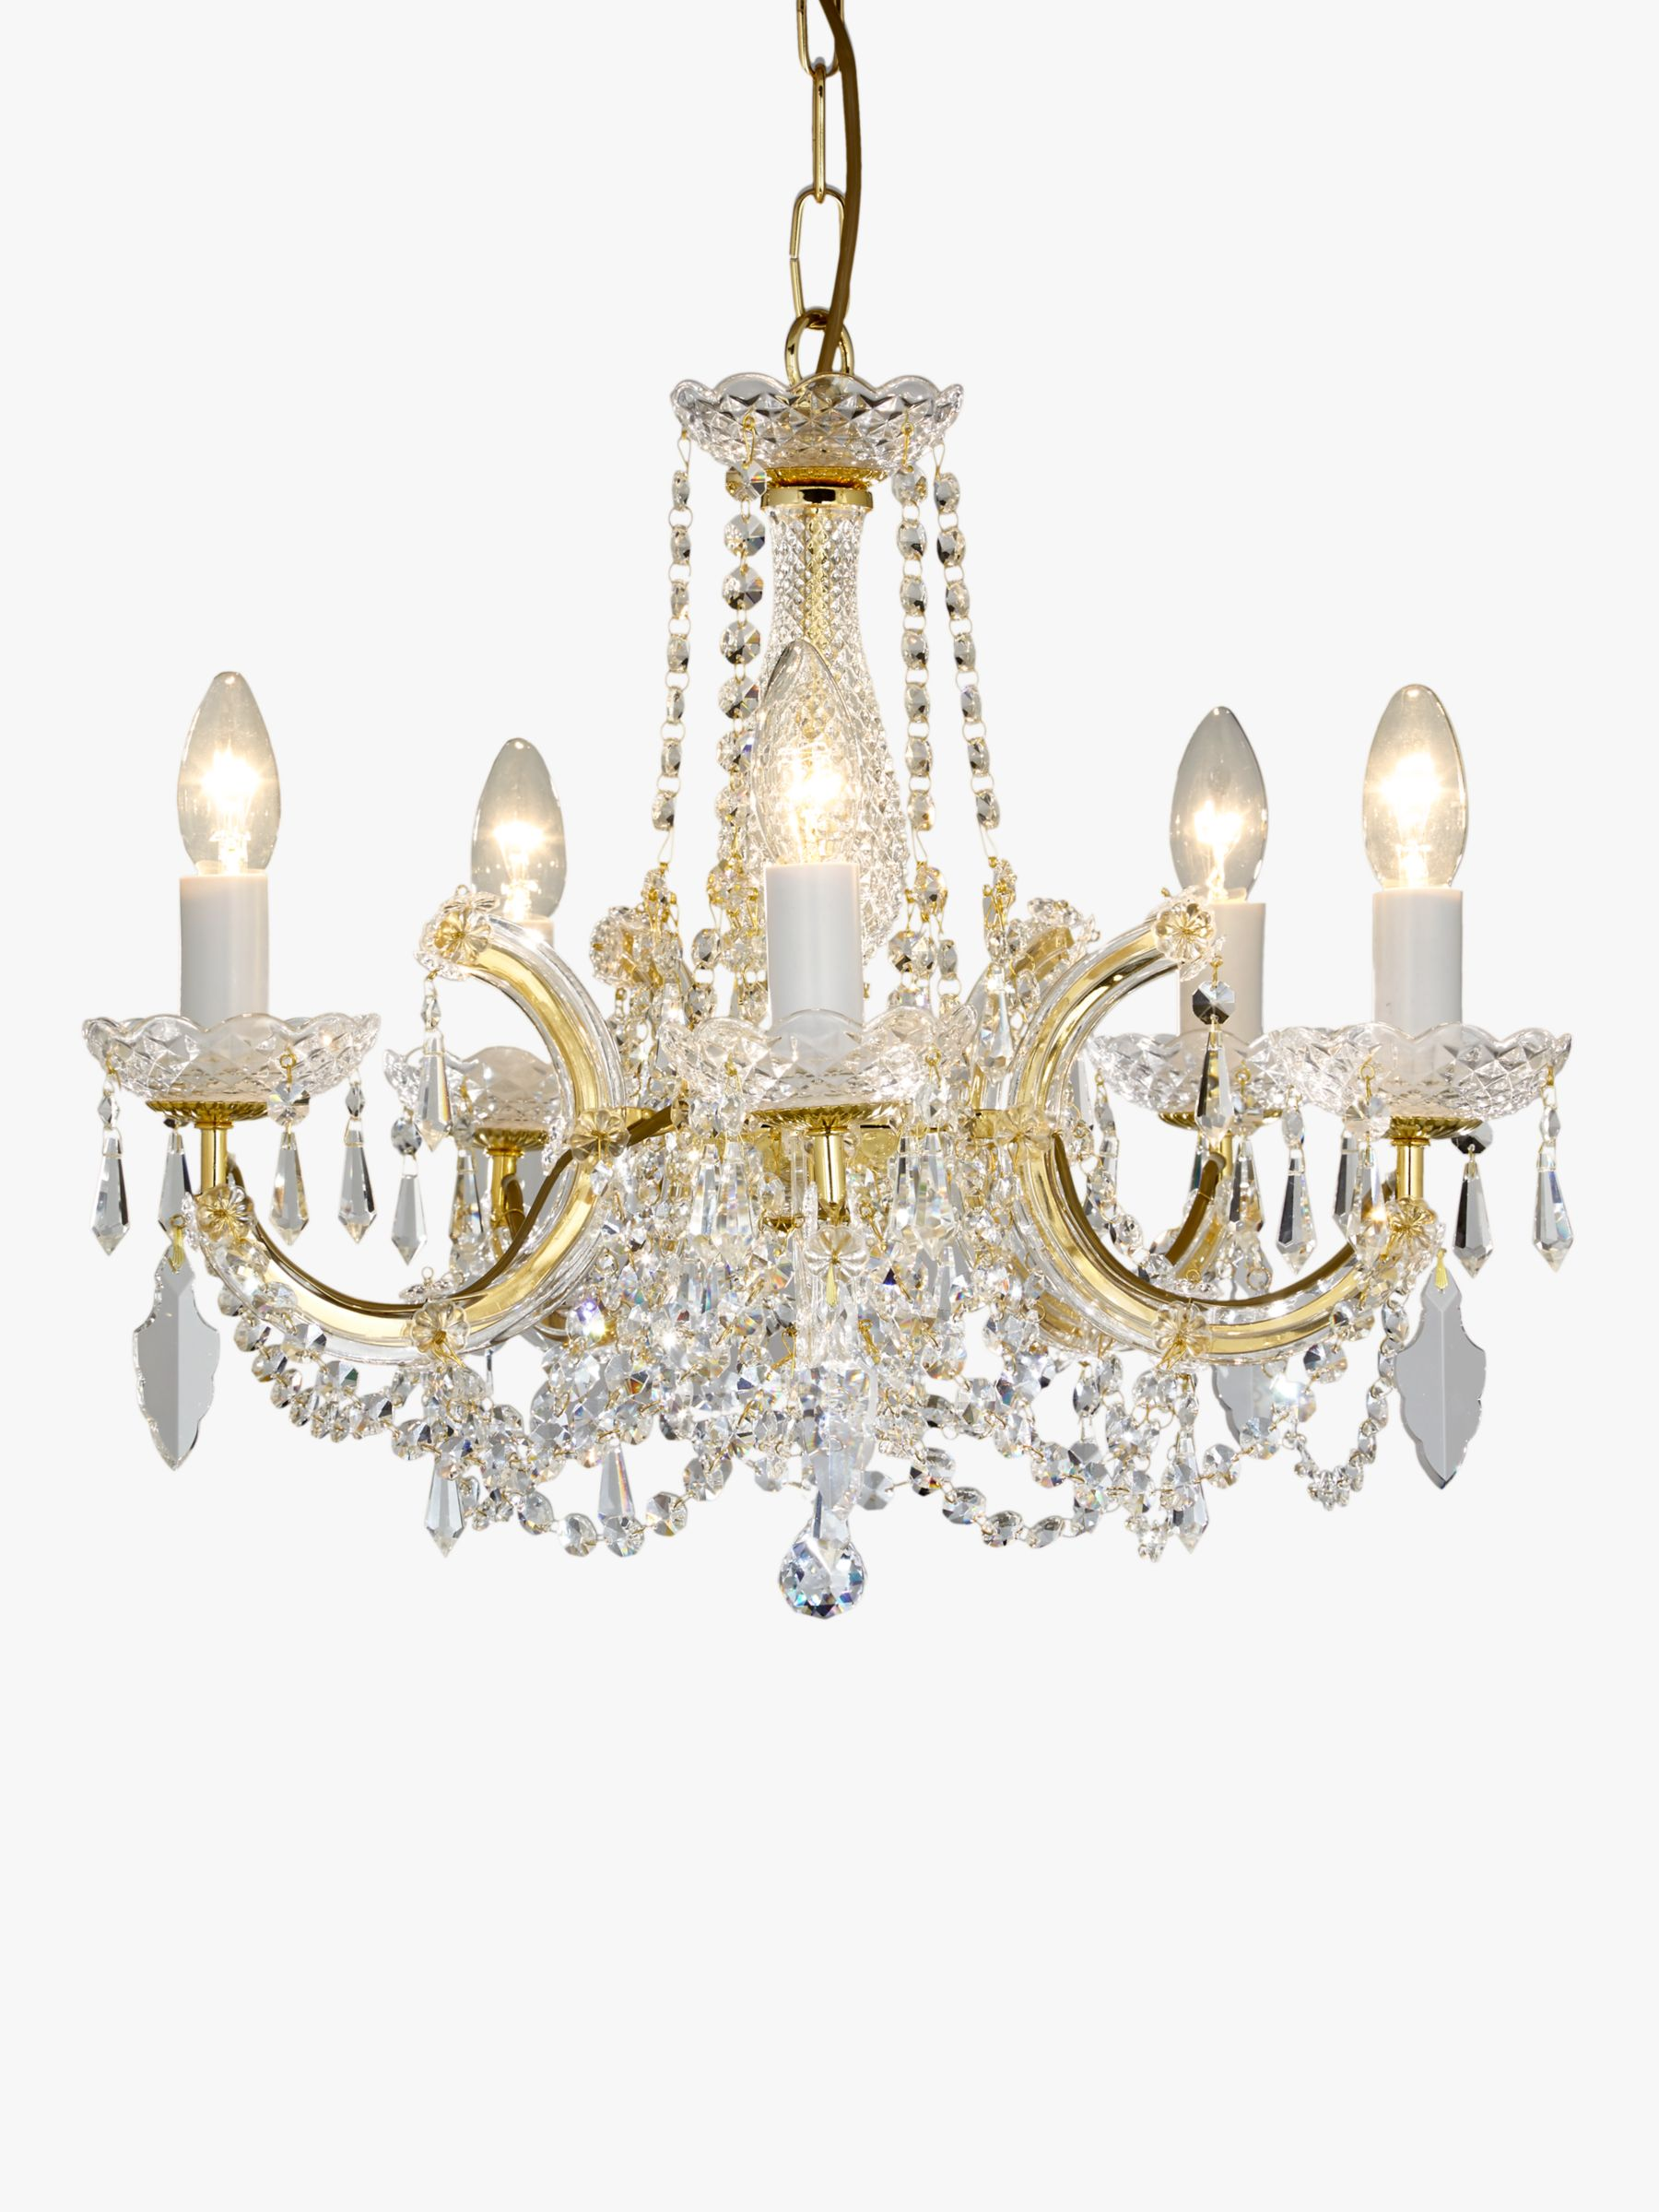 Impex Impex Marie Theresa Chandelier, 5 Arm, Clear/Gold